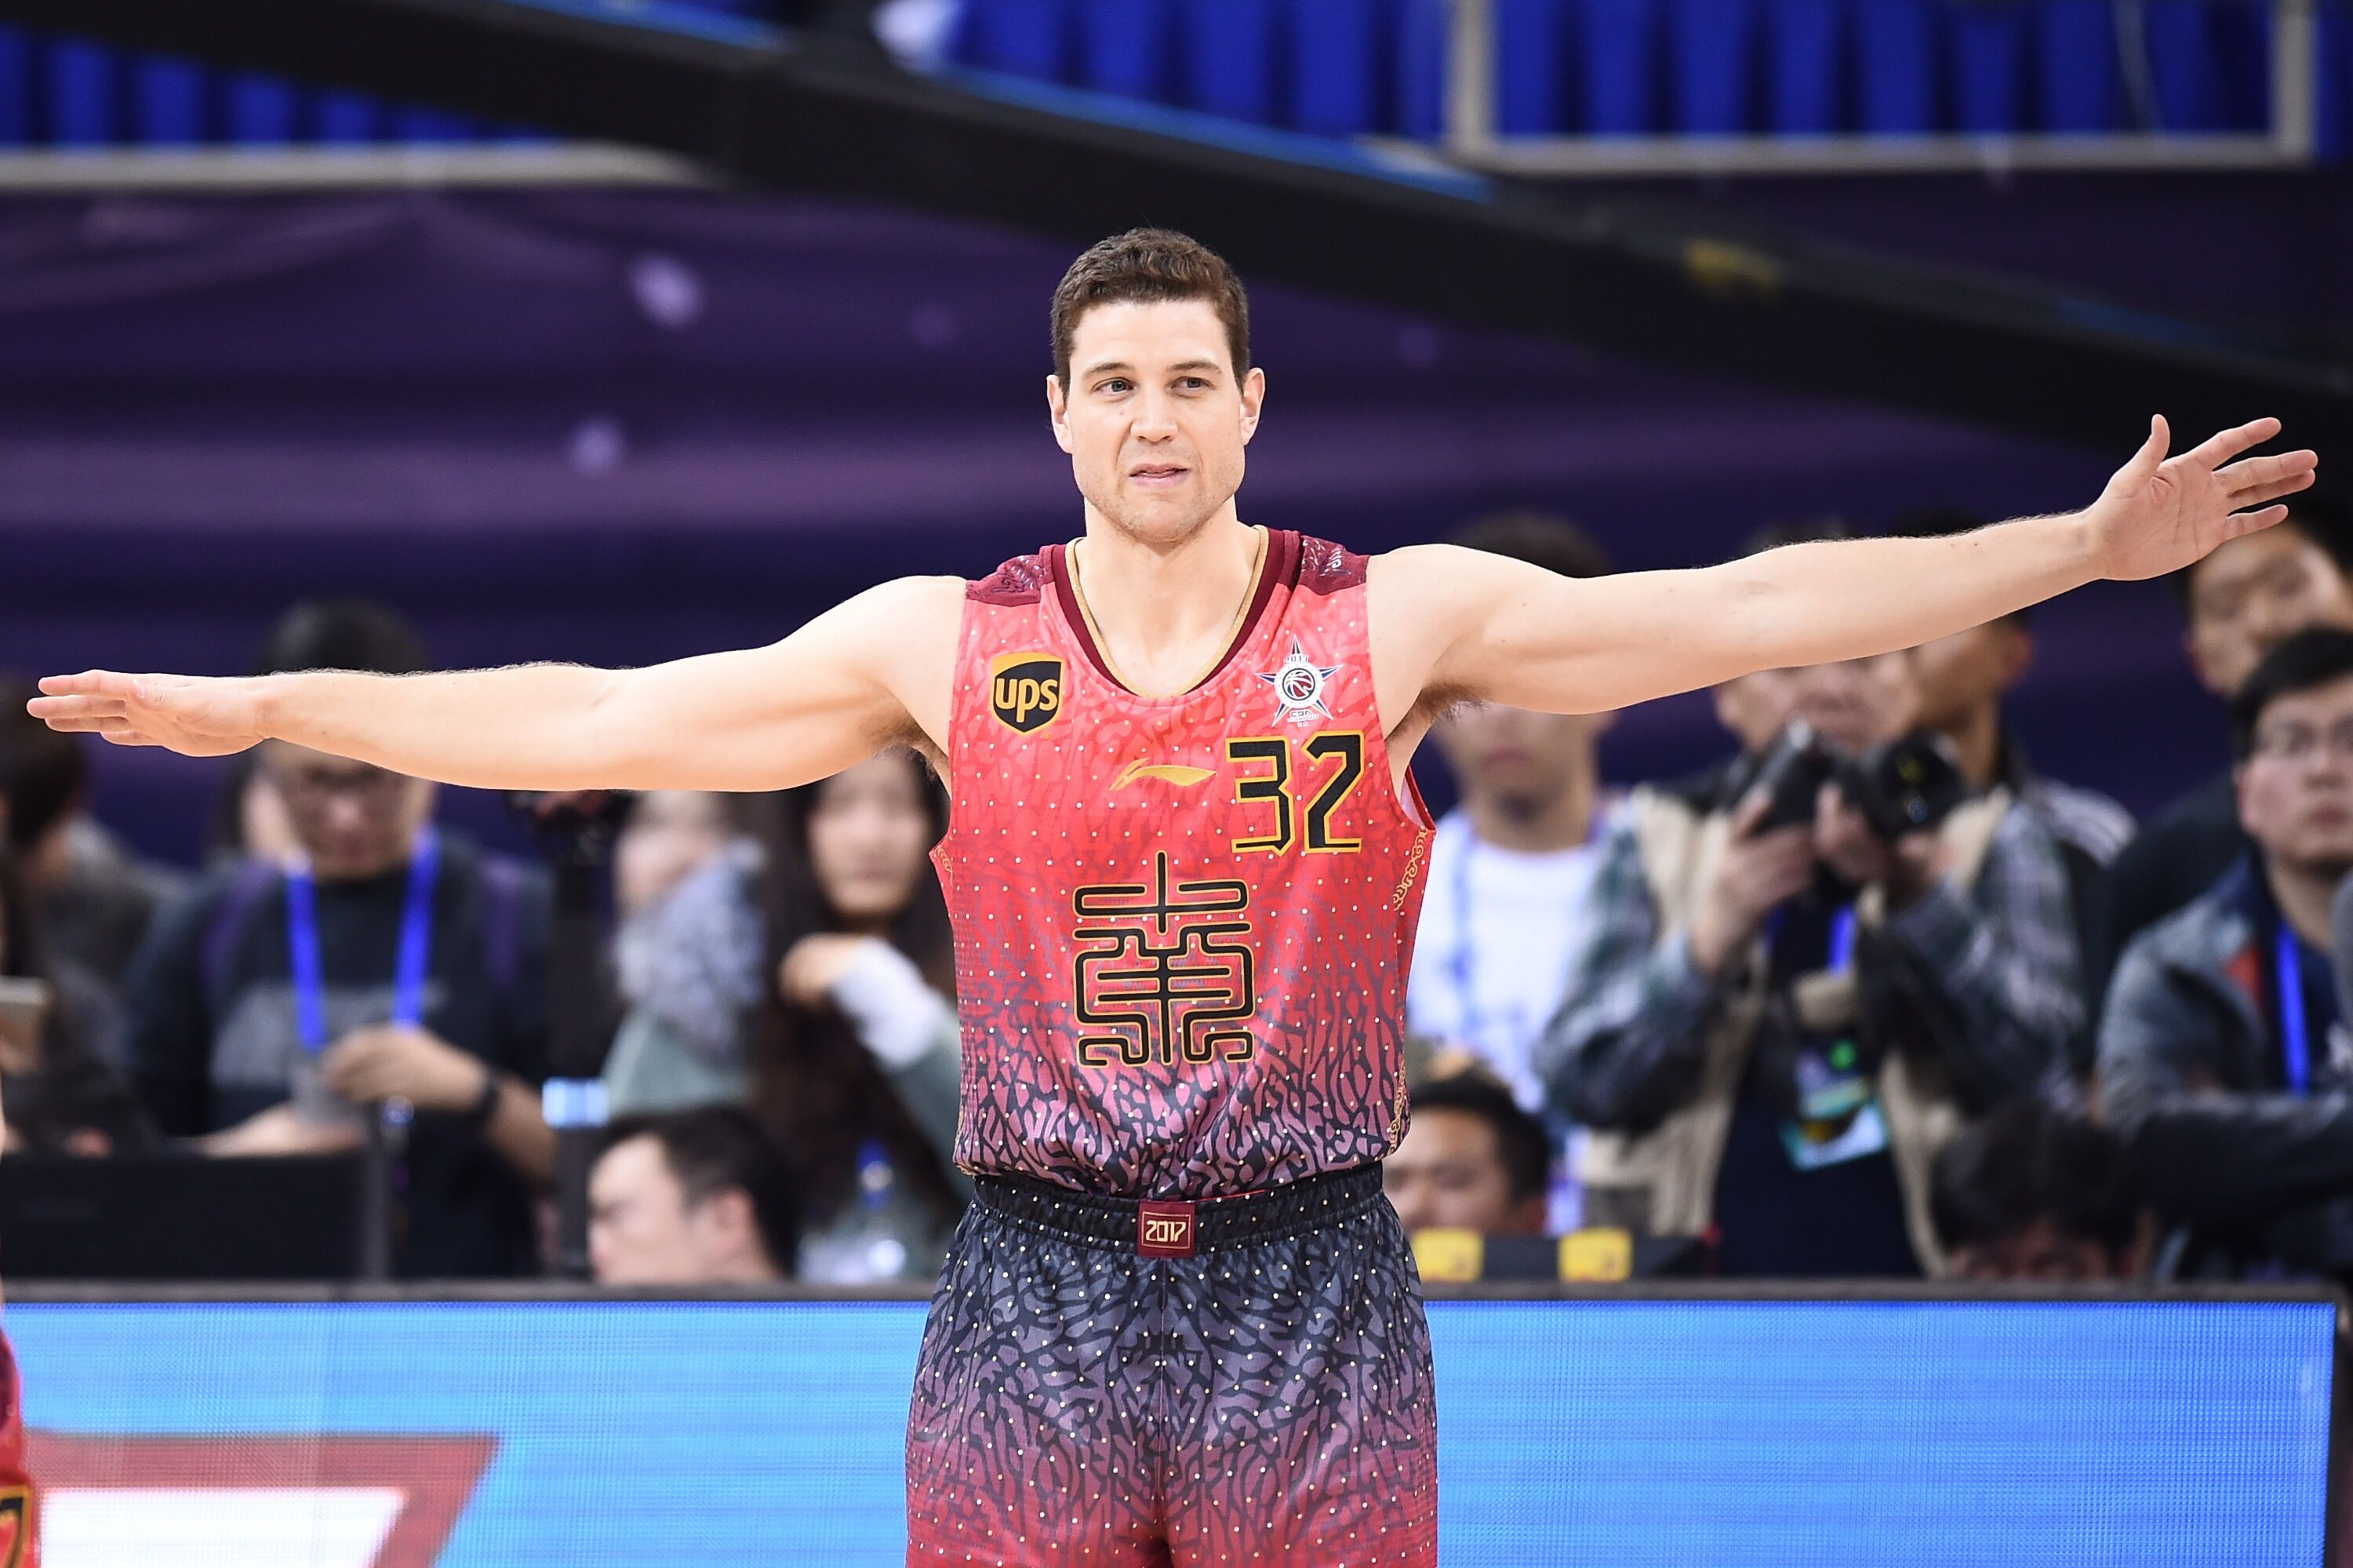 Jimmer Fredette and Stephon Marbury tussle in China